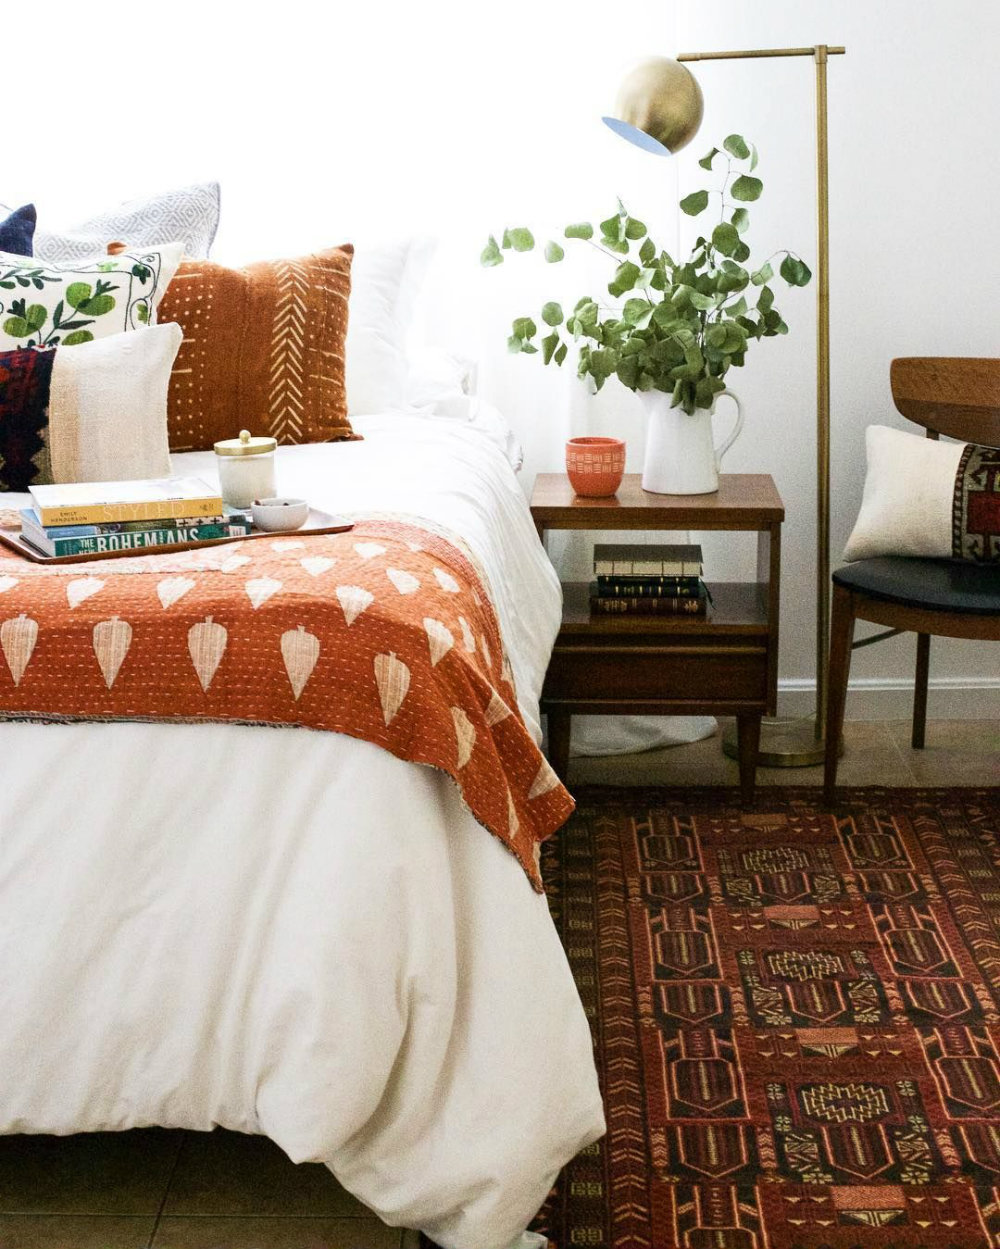 Stunning Interiors in the 2018 Fall Color Trends 05 Fall Color Trends Stunning Interiors in the 2018 Fall Color Trends Stunning Interiors in the Fall Color Trends 05